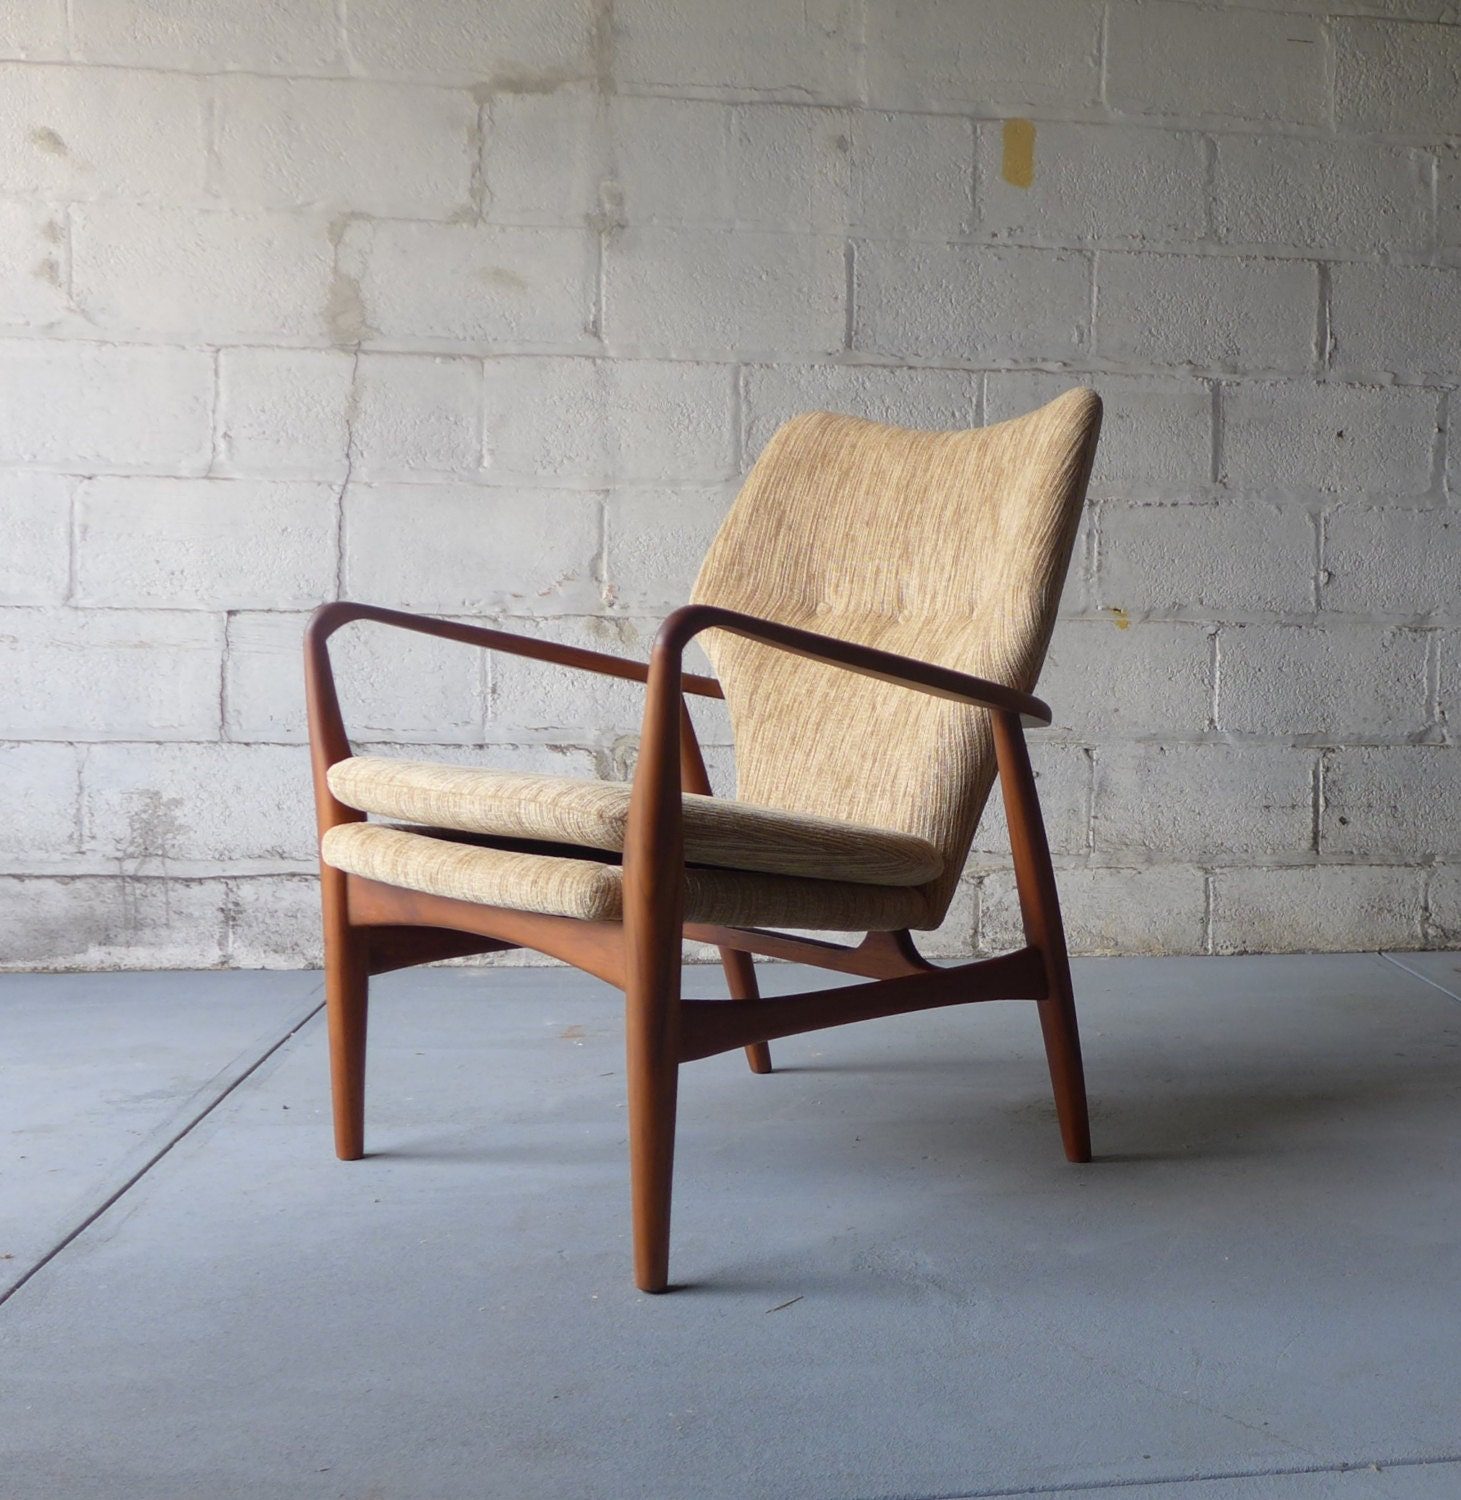 35  Unique Mid Century Modern Lounge Chair